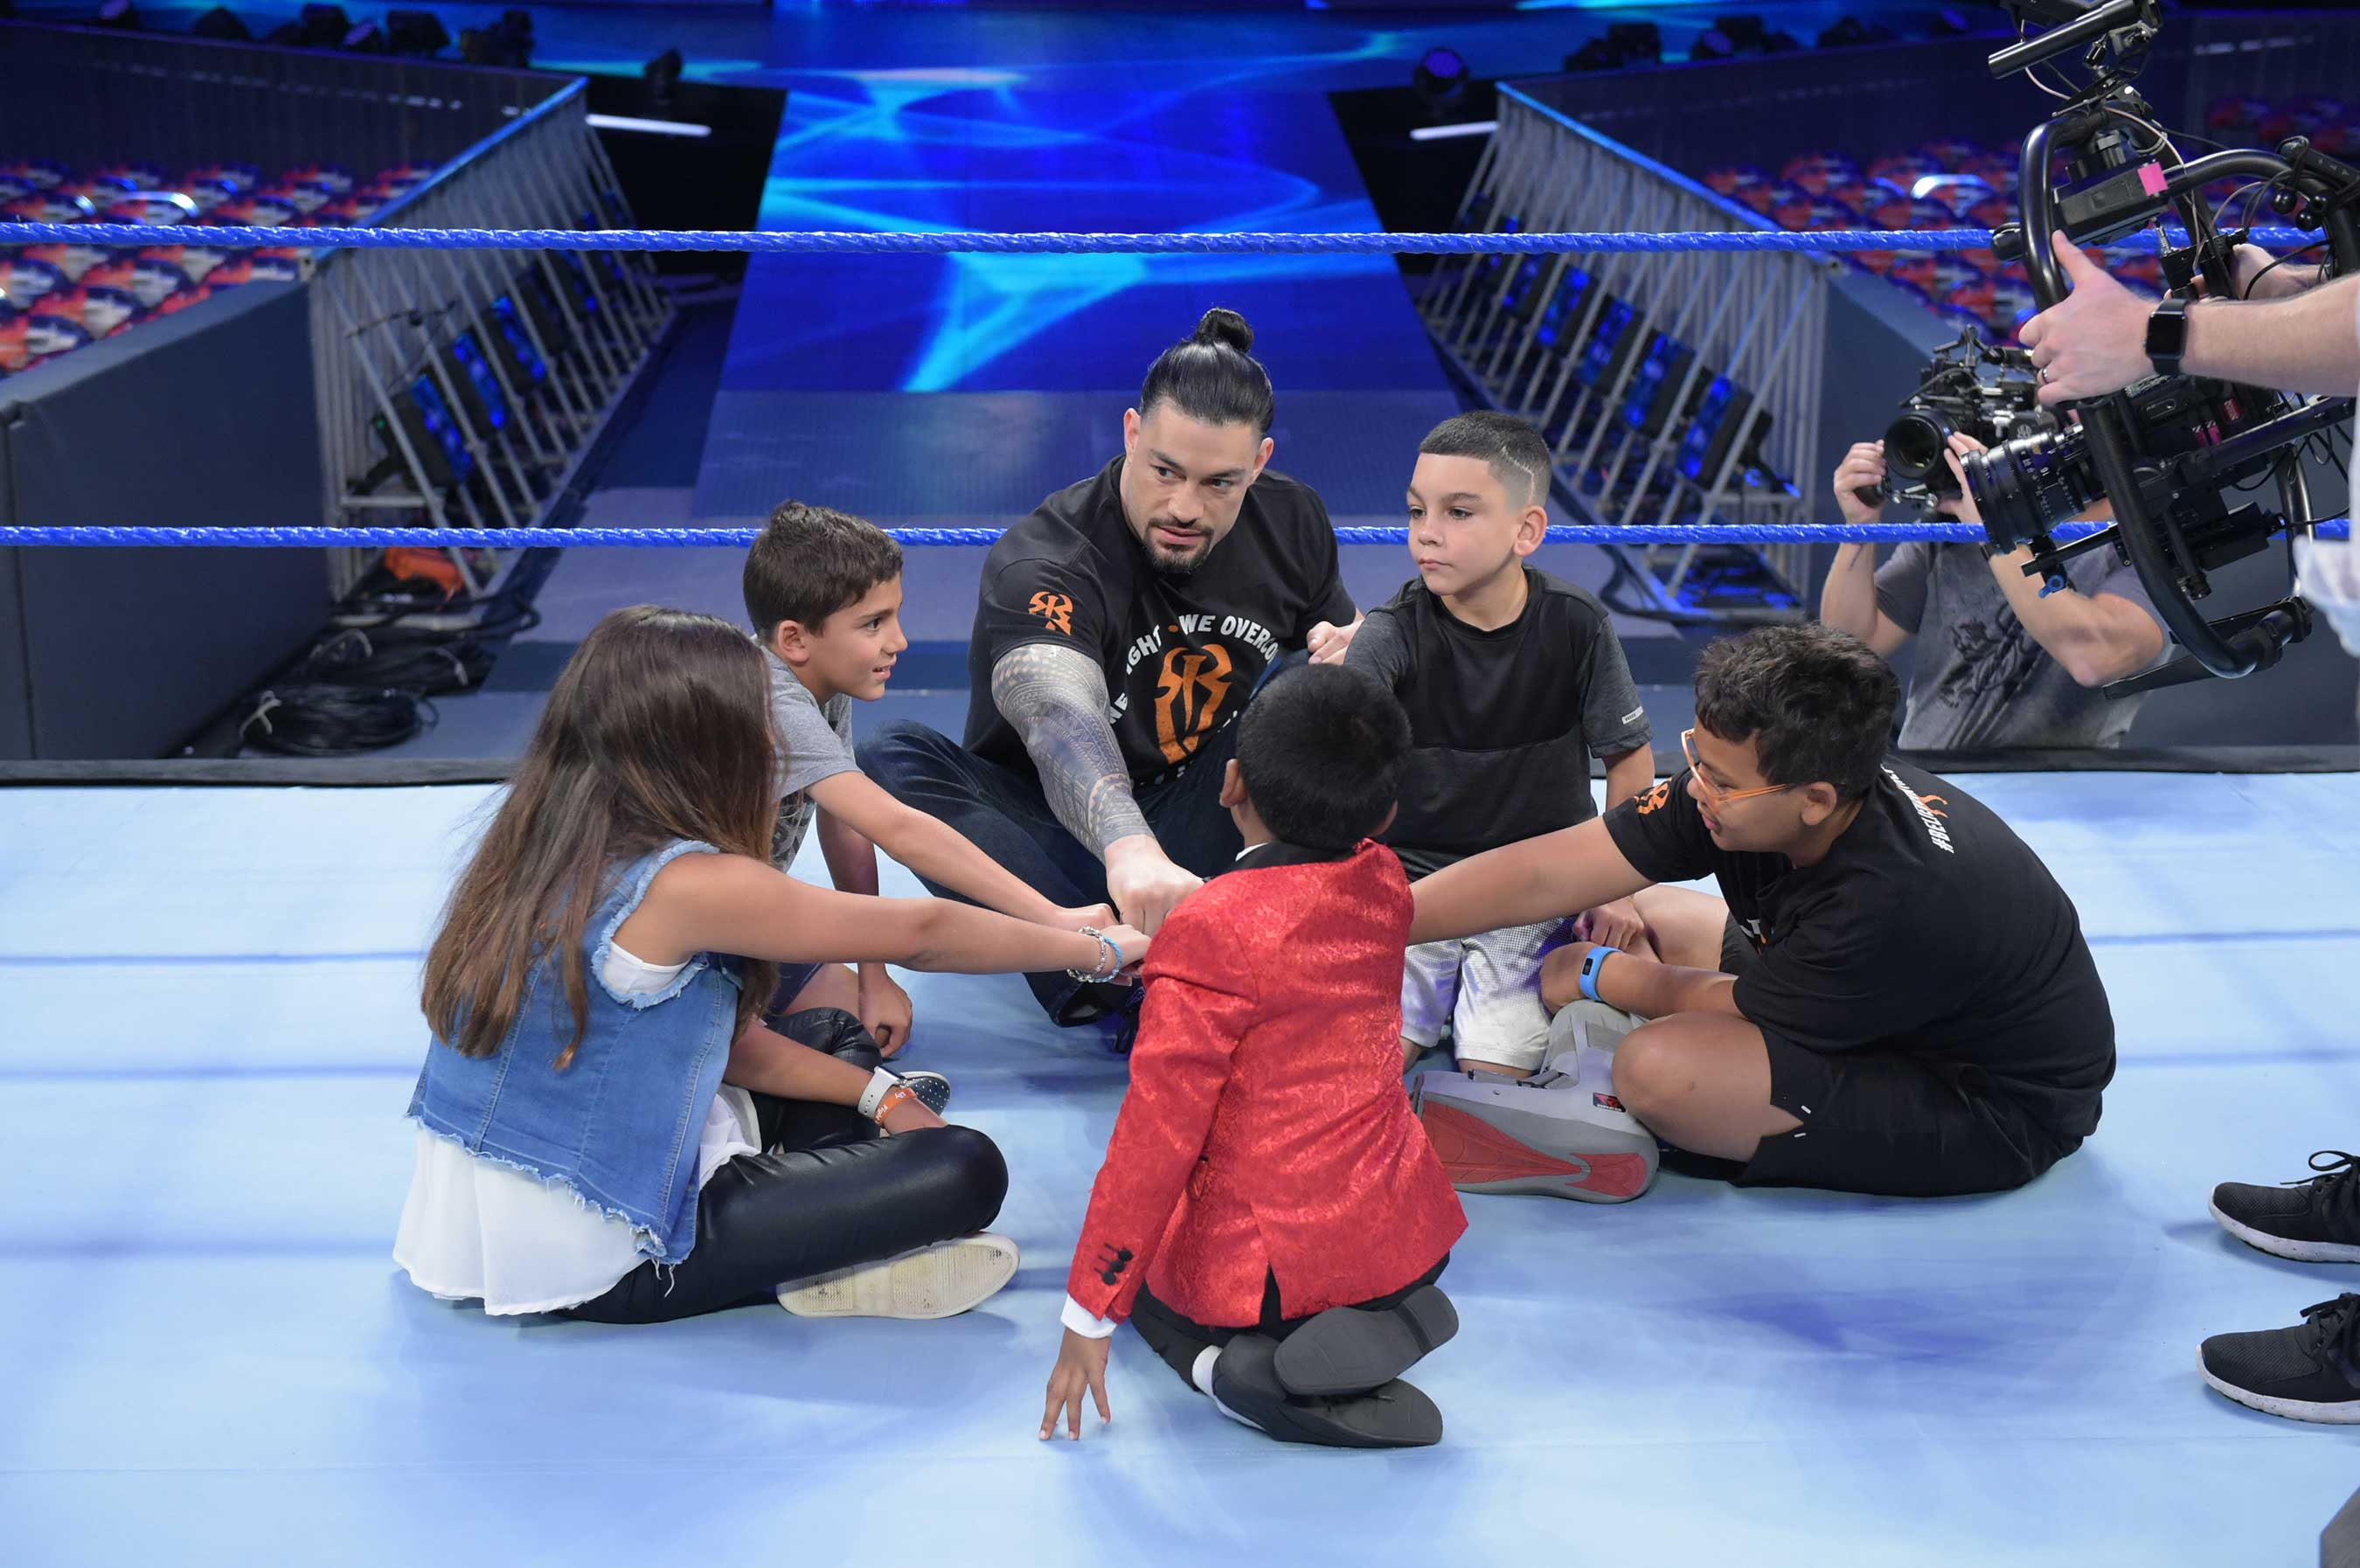 WWE superstar Roman Reigns joins young cancer survivors for an exclusive behind the scenes experience at the WWE ring